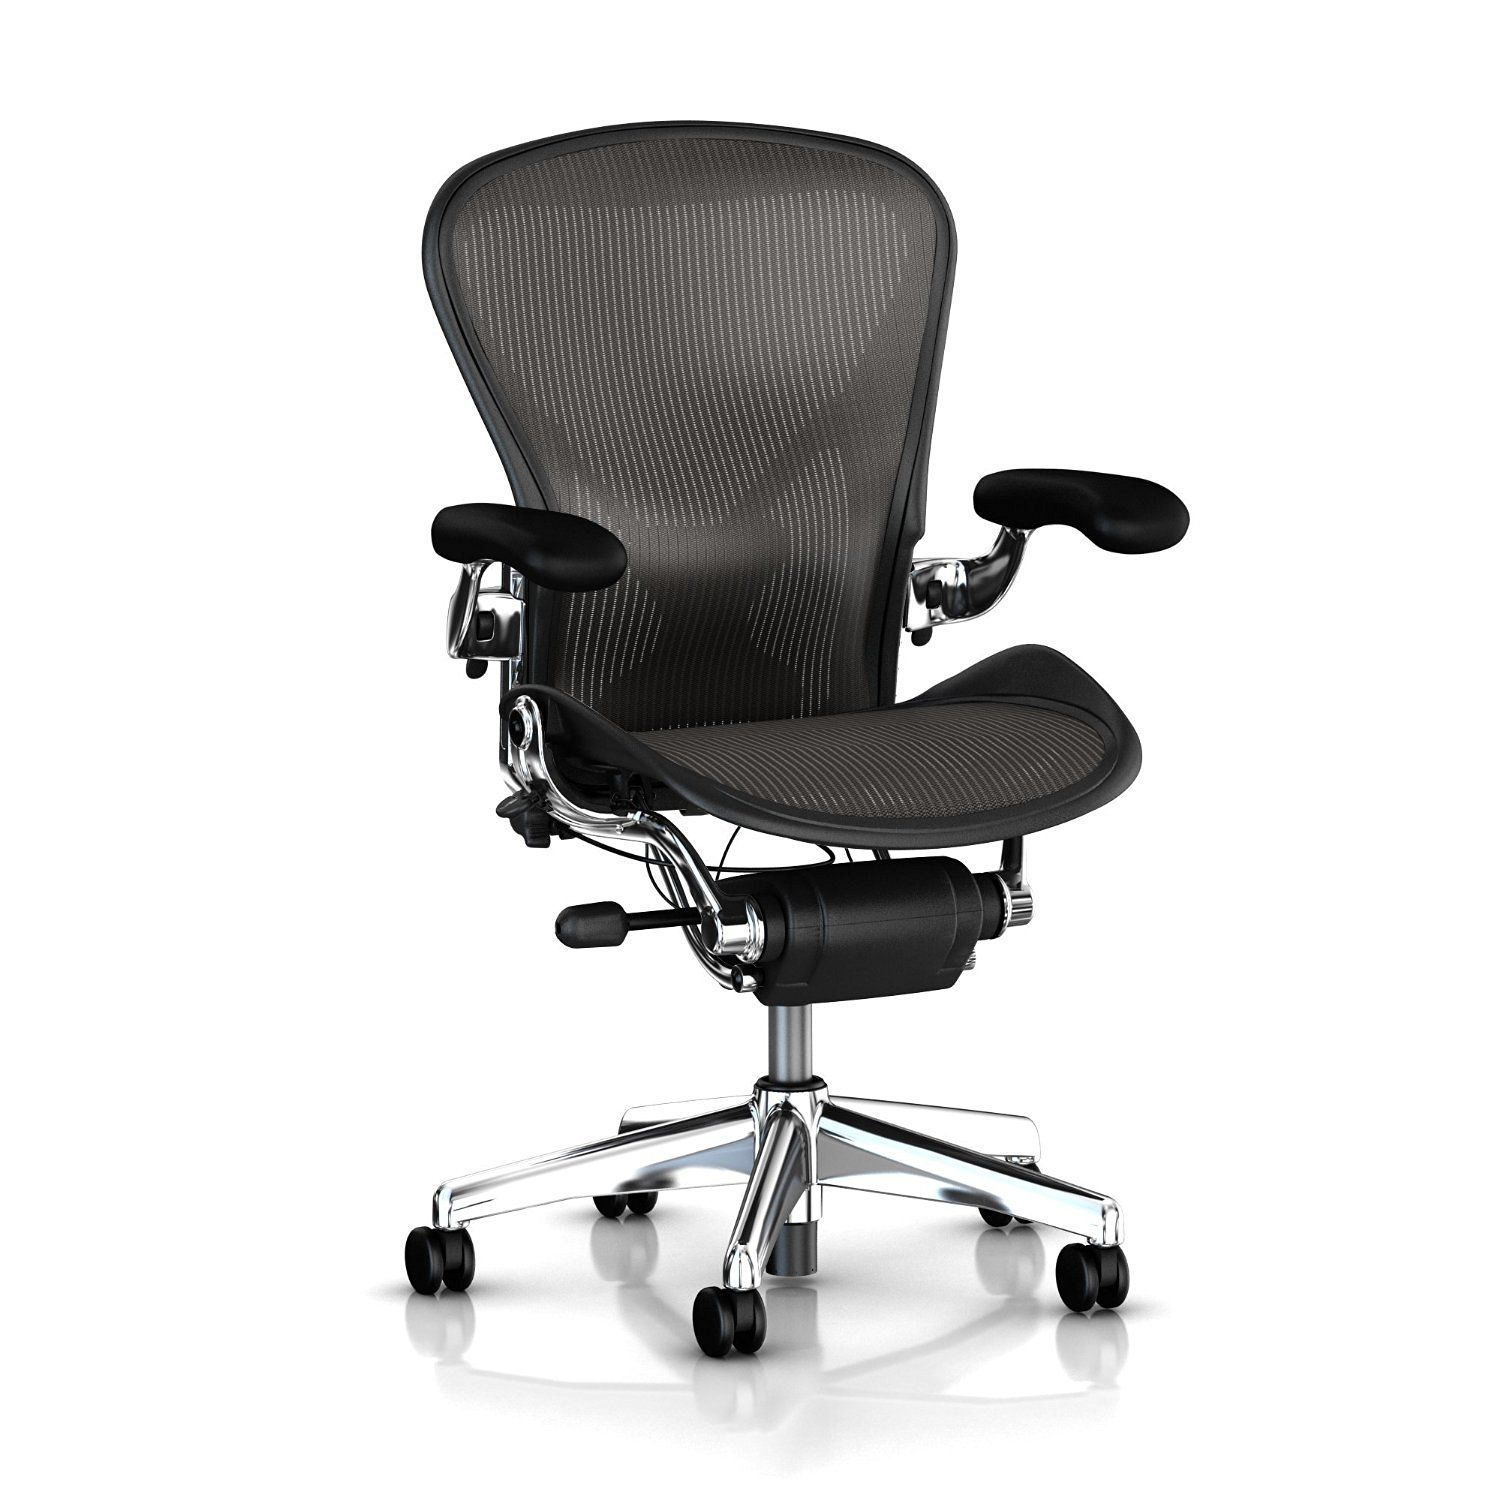 herman miller executive chair Best ergonomic office